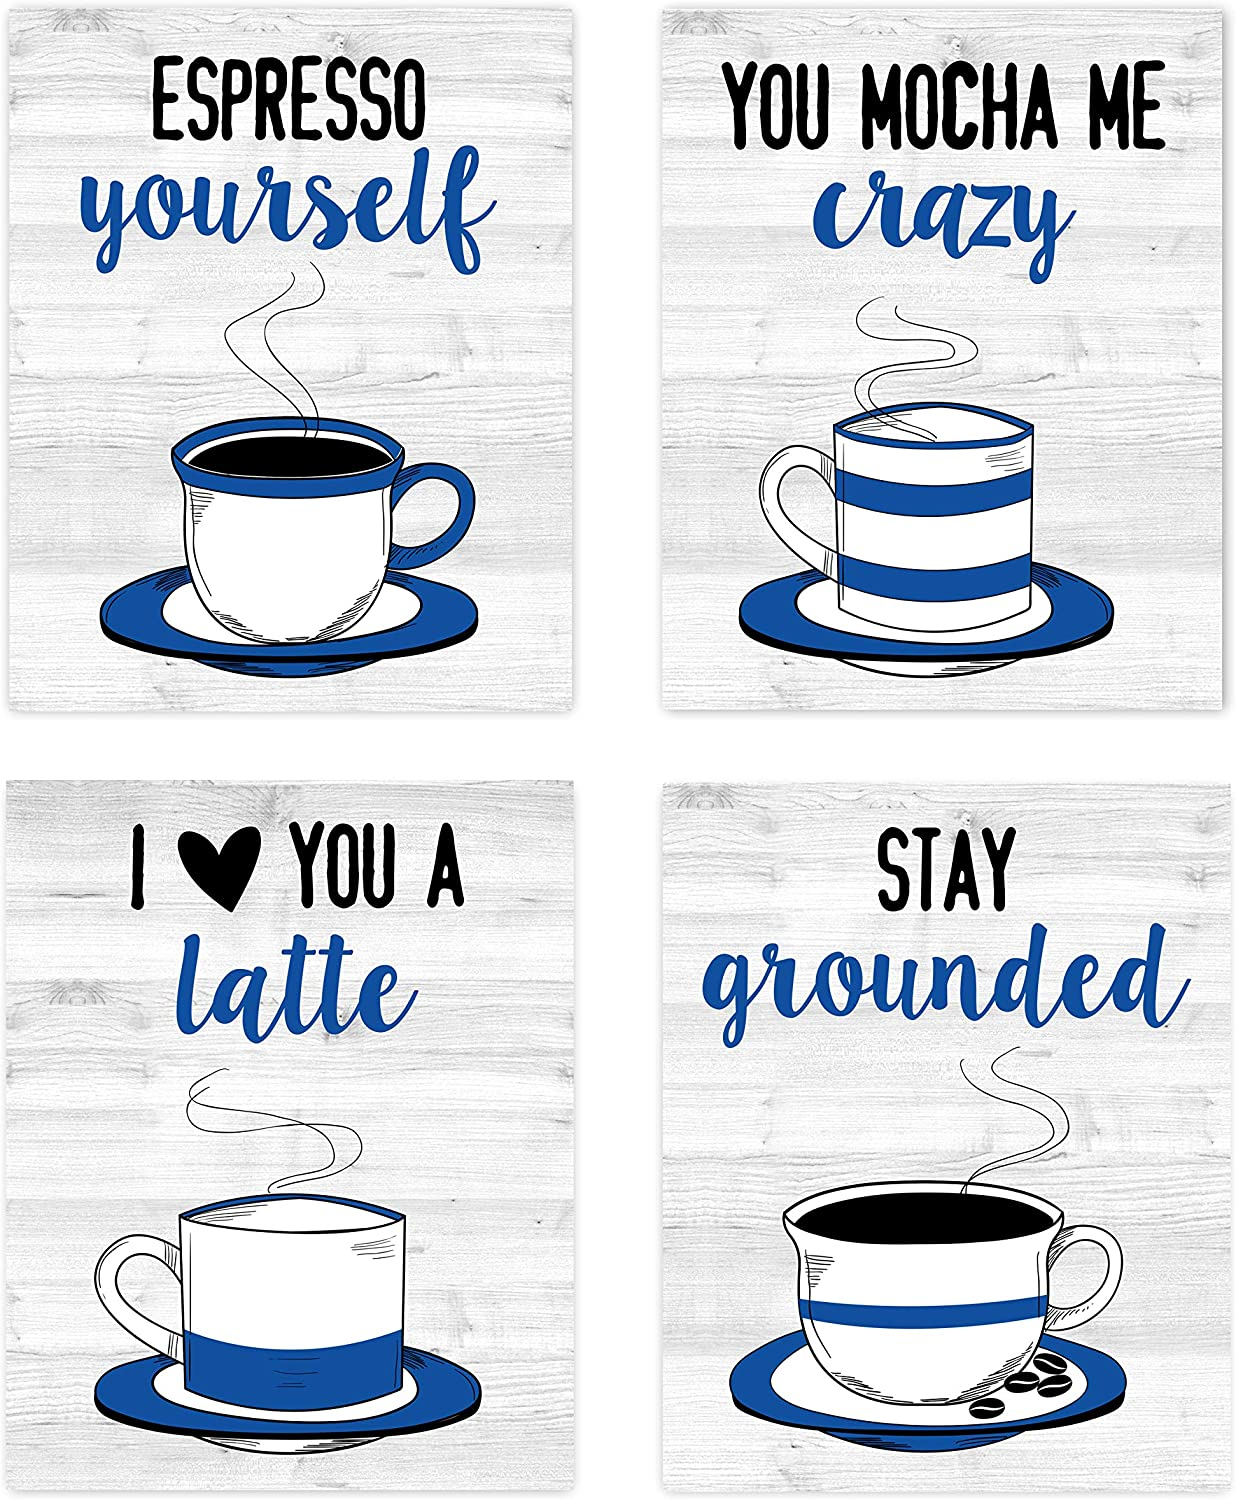 "Retro Vintage Inspirational Kitchen Restaurant Wall Art Coffee Mugs Tea Prints Posters Signs Funny Puns Sayings Quotes for Rustic Modern Farmhouse Country Home and Dining Decor Decorations Set of 4 Unframed 8"" x 10"" Navy Royal Blue Black & White"